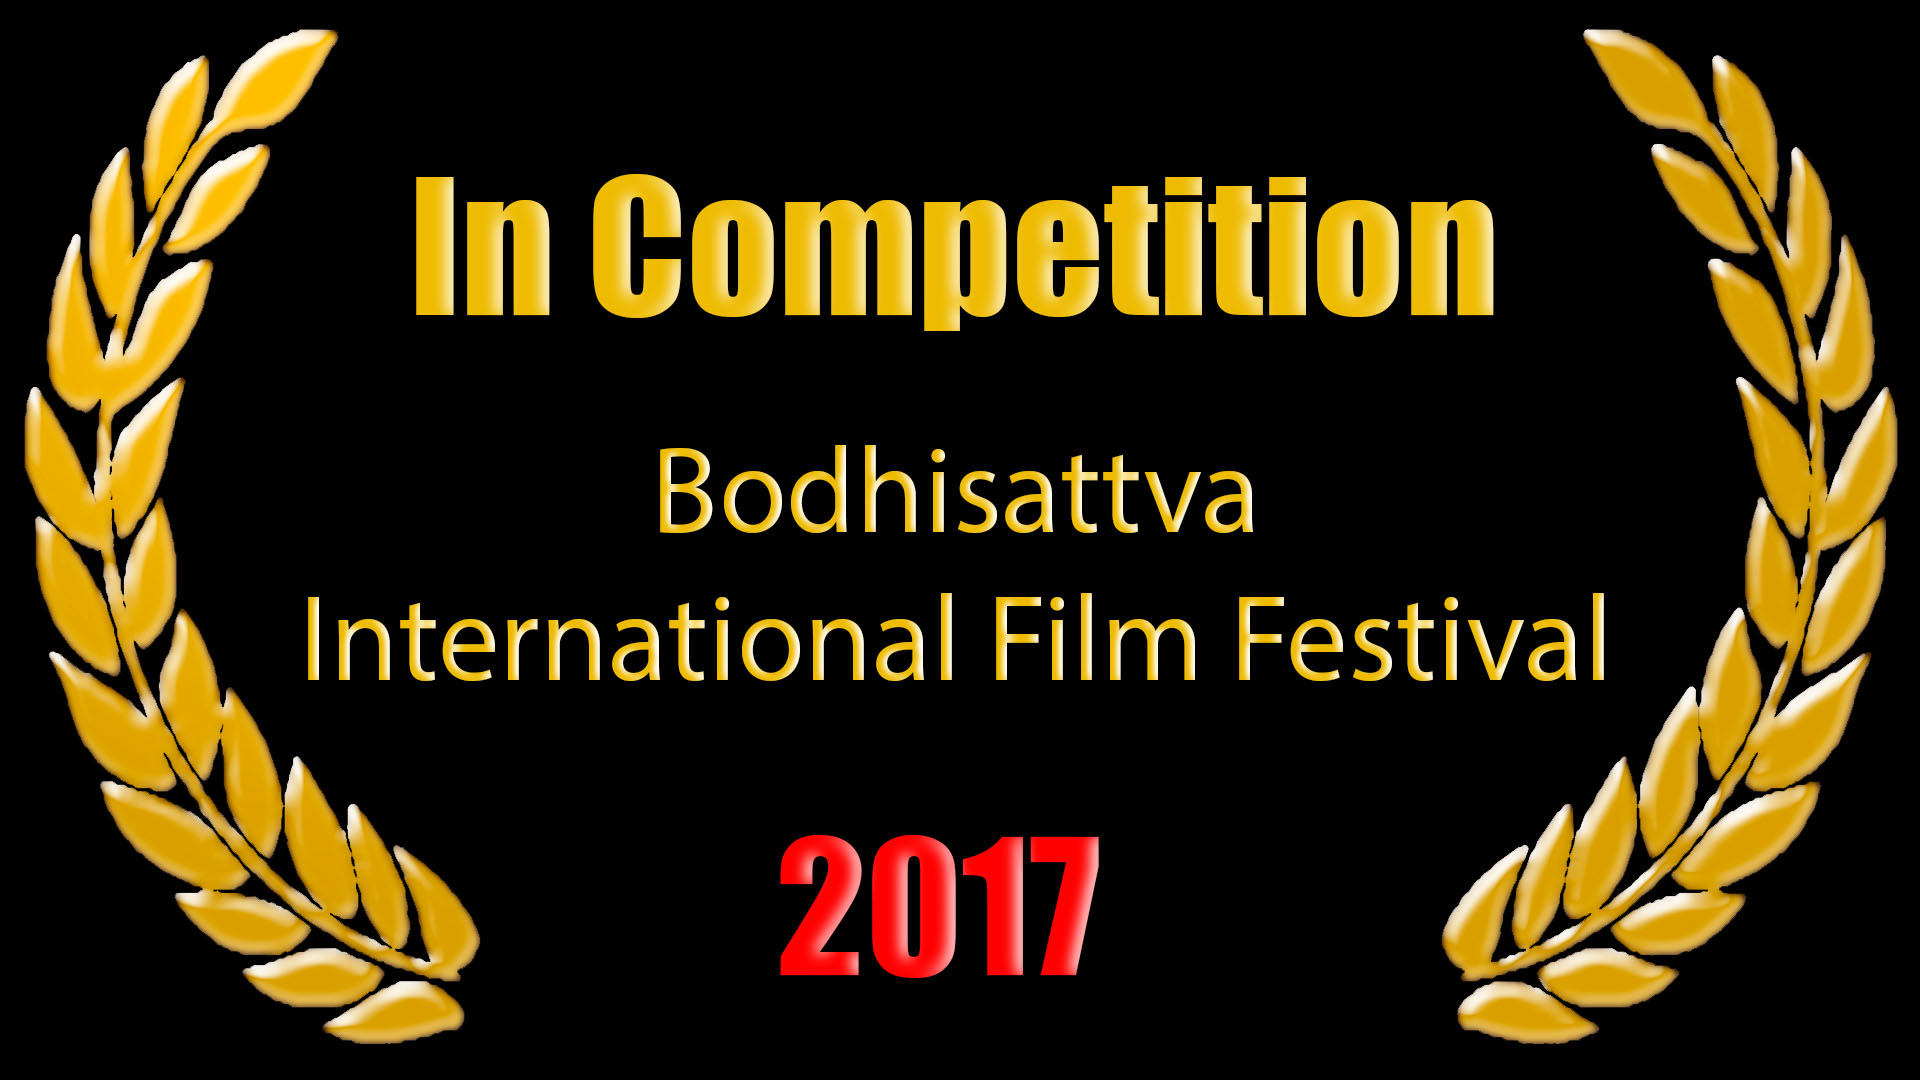 In Competition Bodhisattva International Film Festival 2017